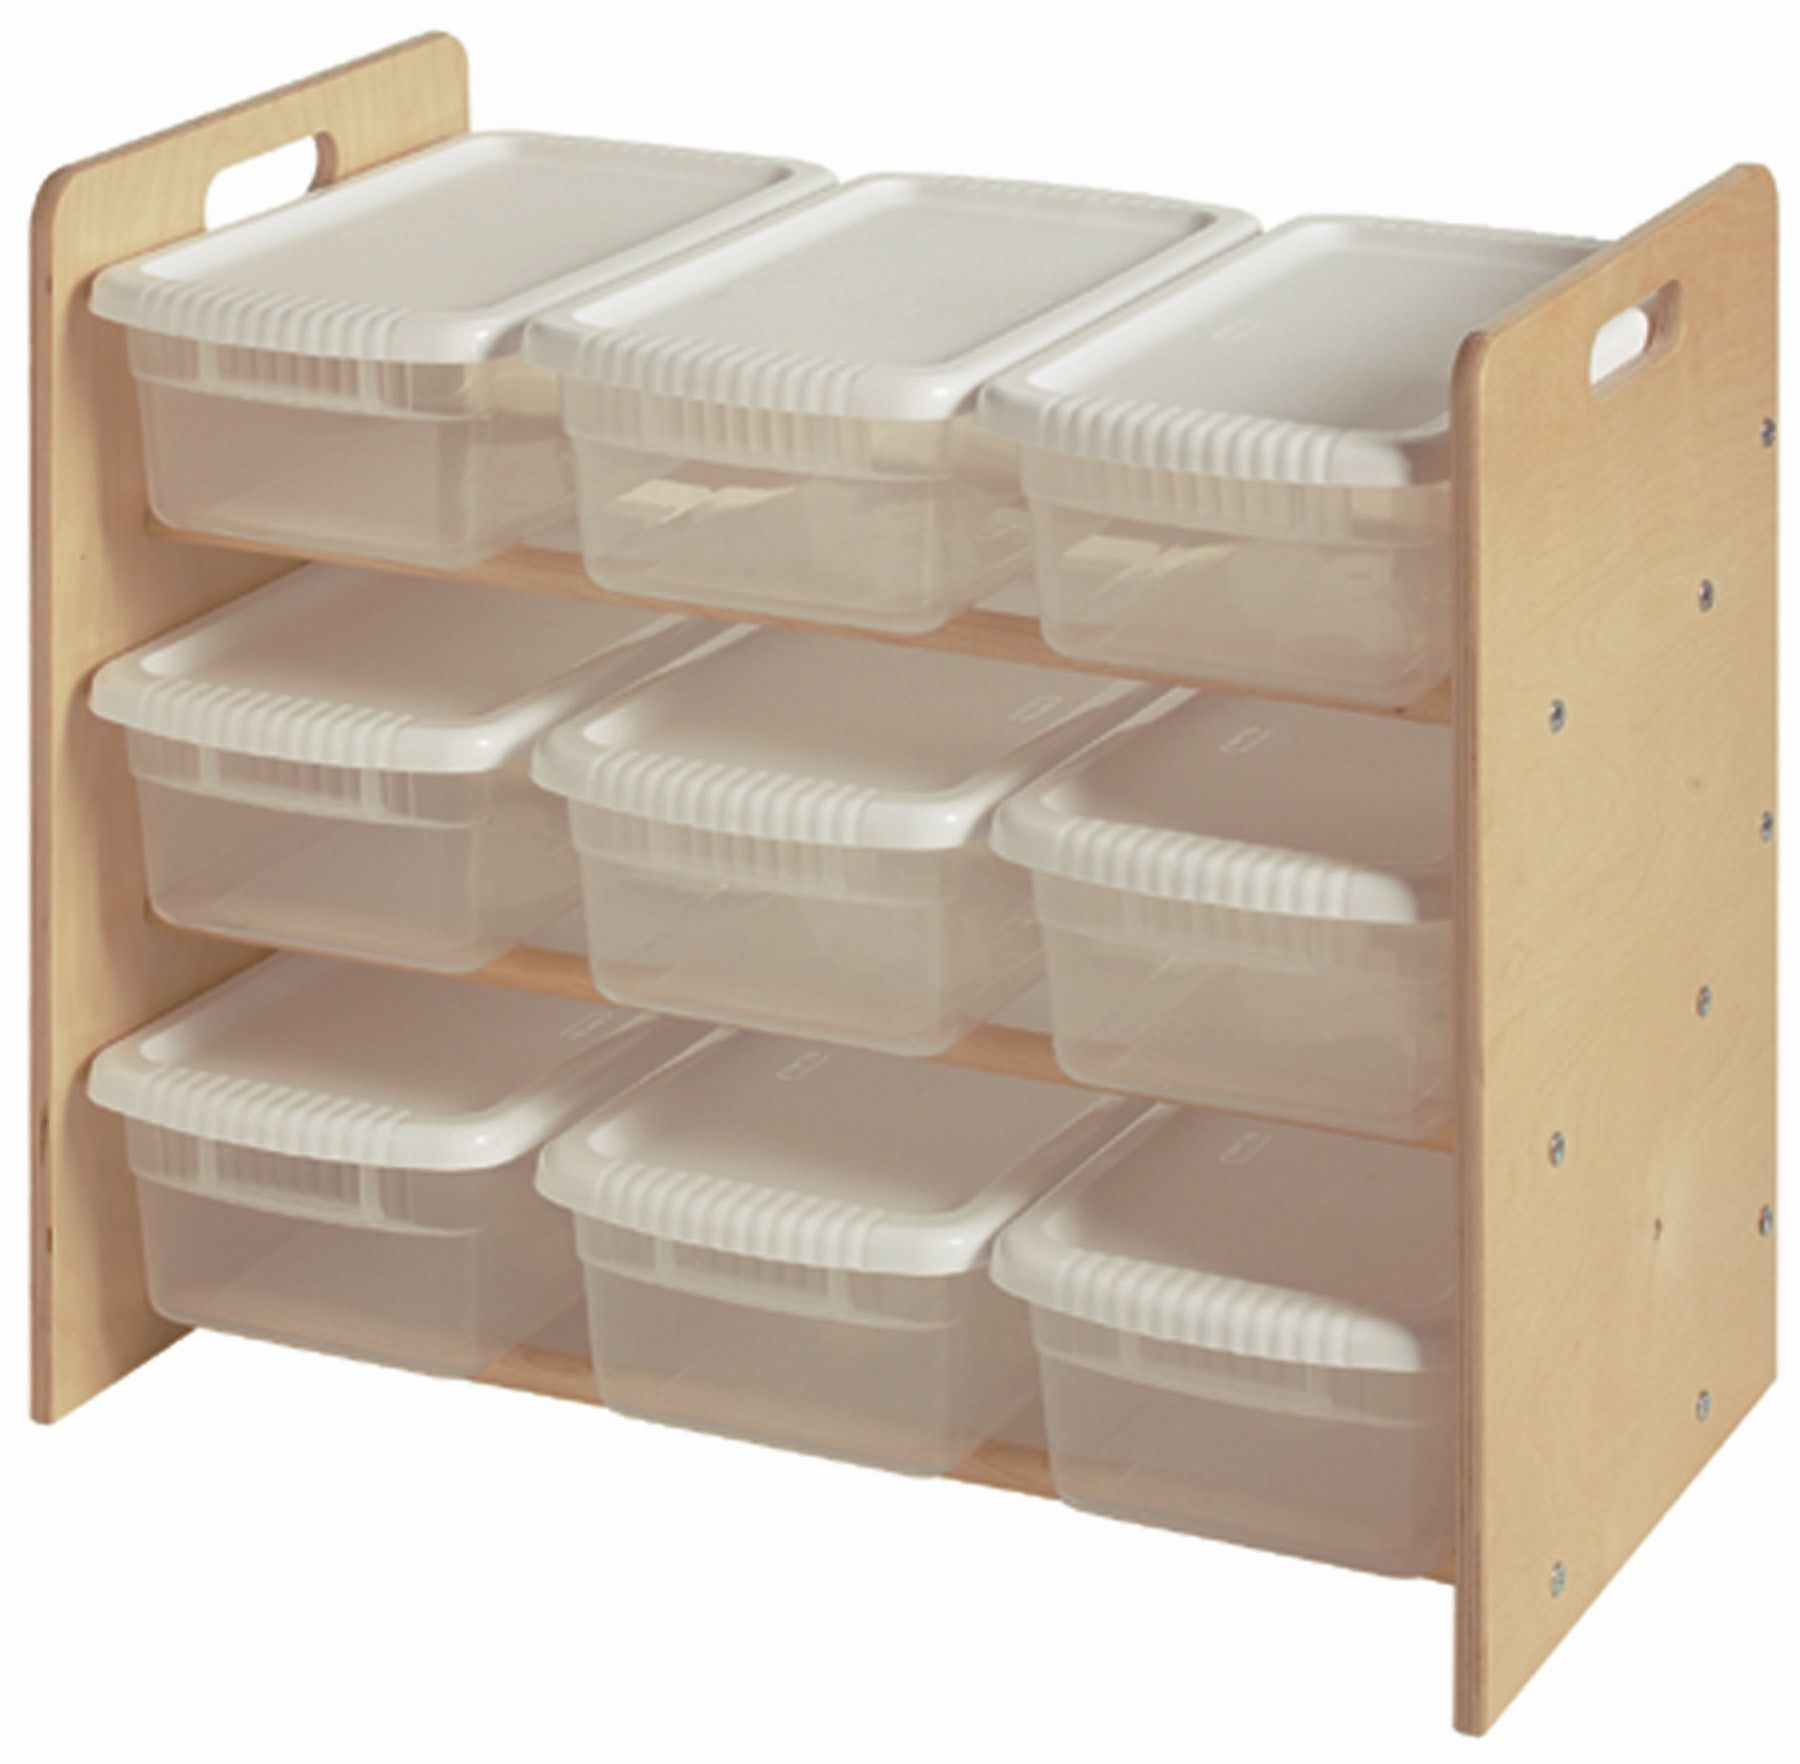 Medium Crop Of Toy Bin Organizer